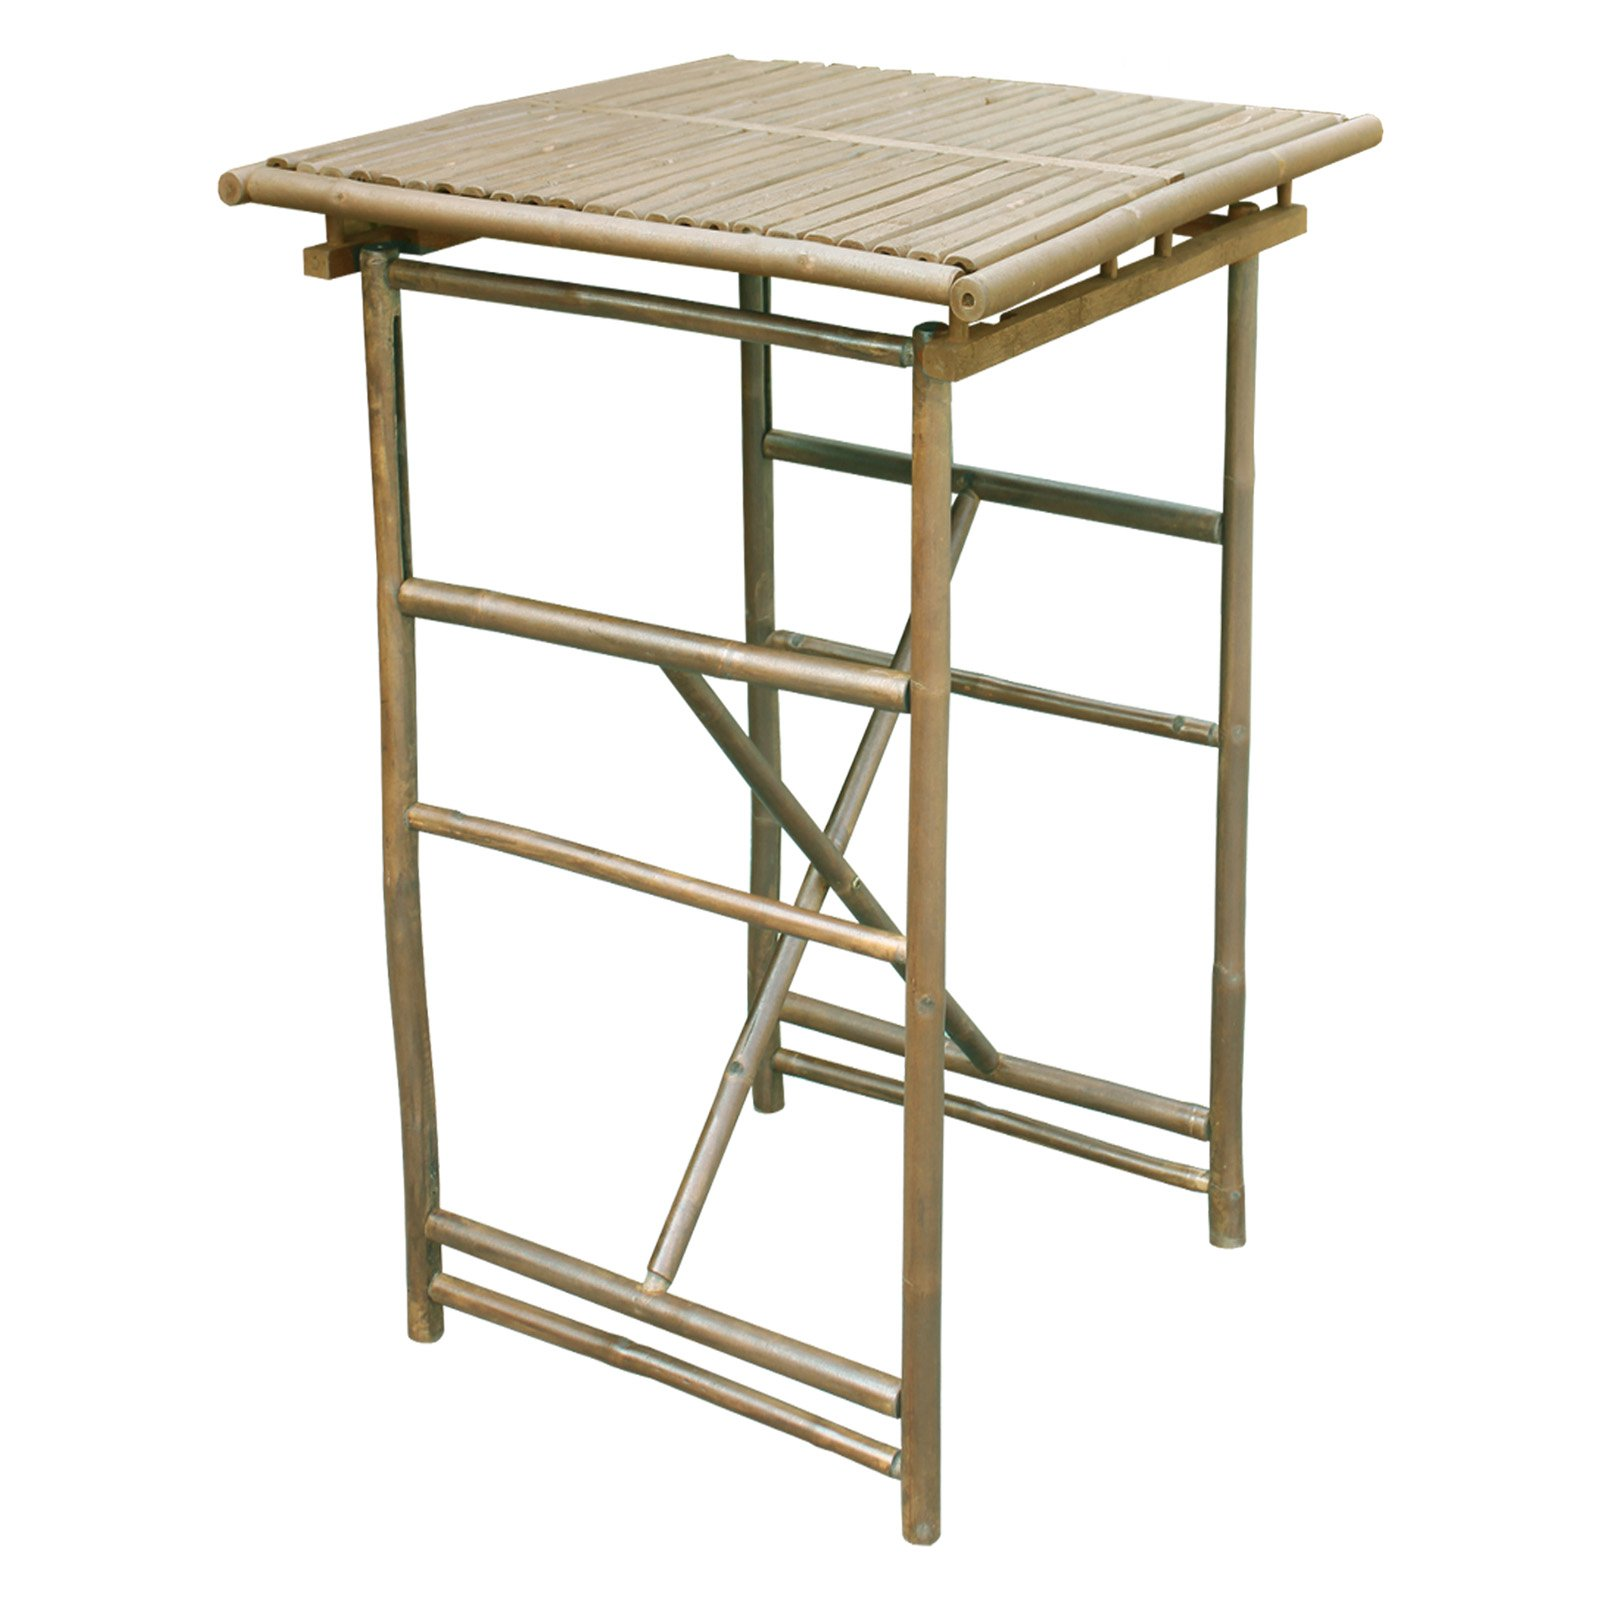 Zew Hand Crafted Square Bamboo Folding Bar Height Patio Table